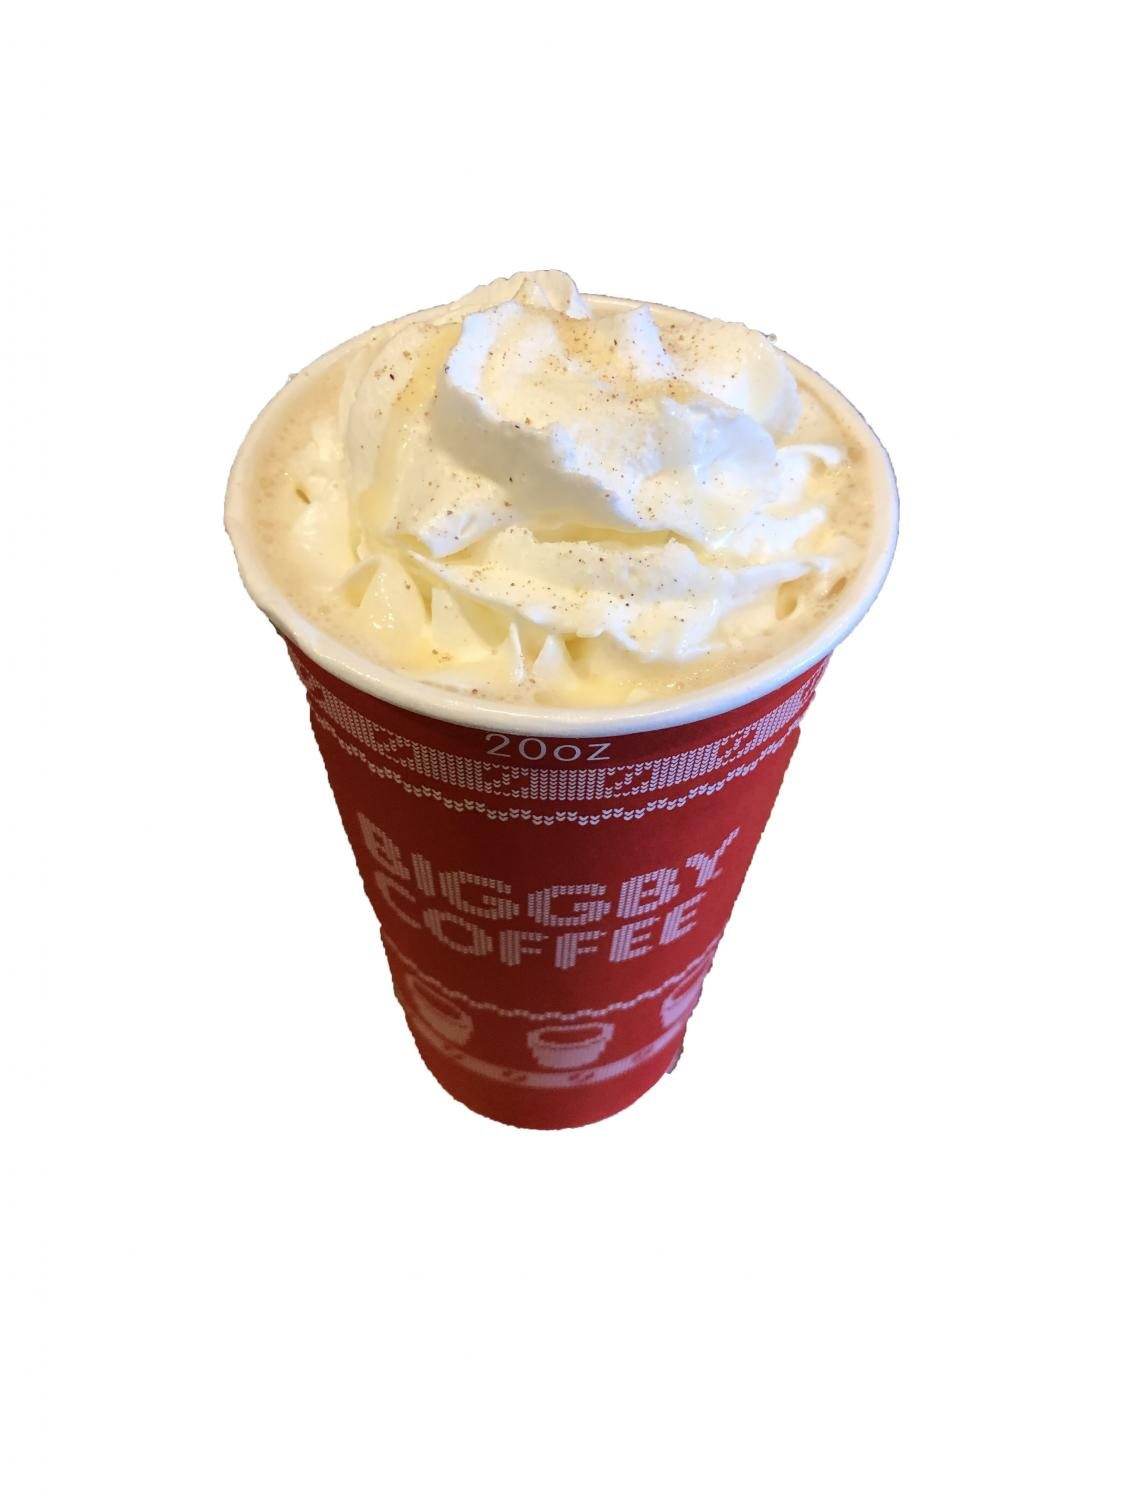 The Winter Wonderland latte is available at Biggy throughout the rest of December.